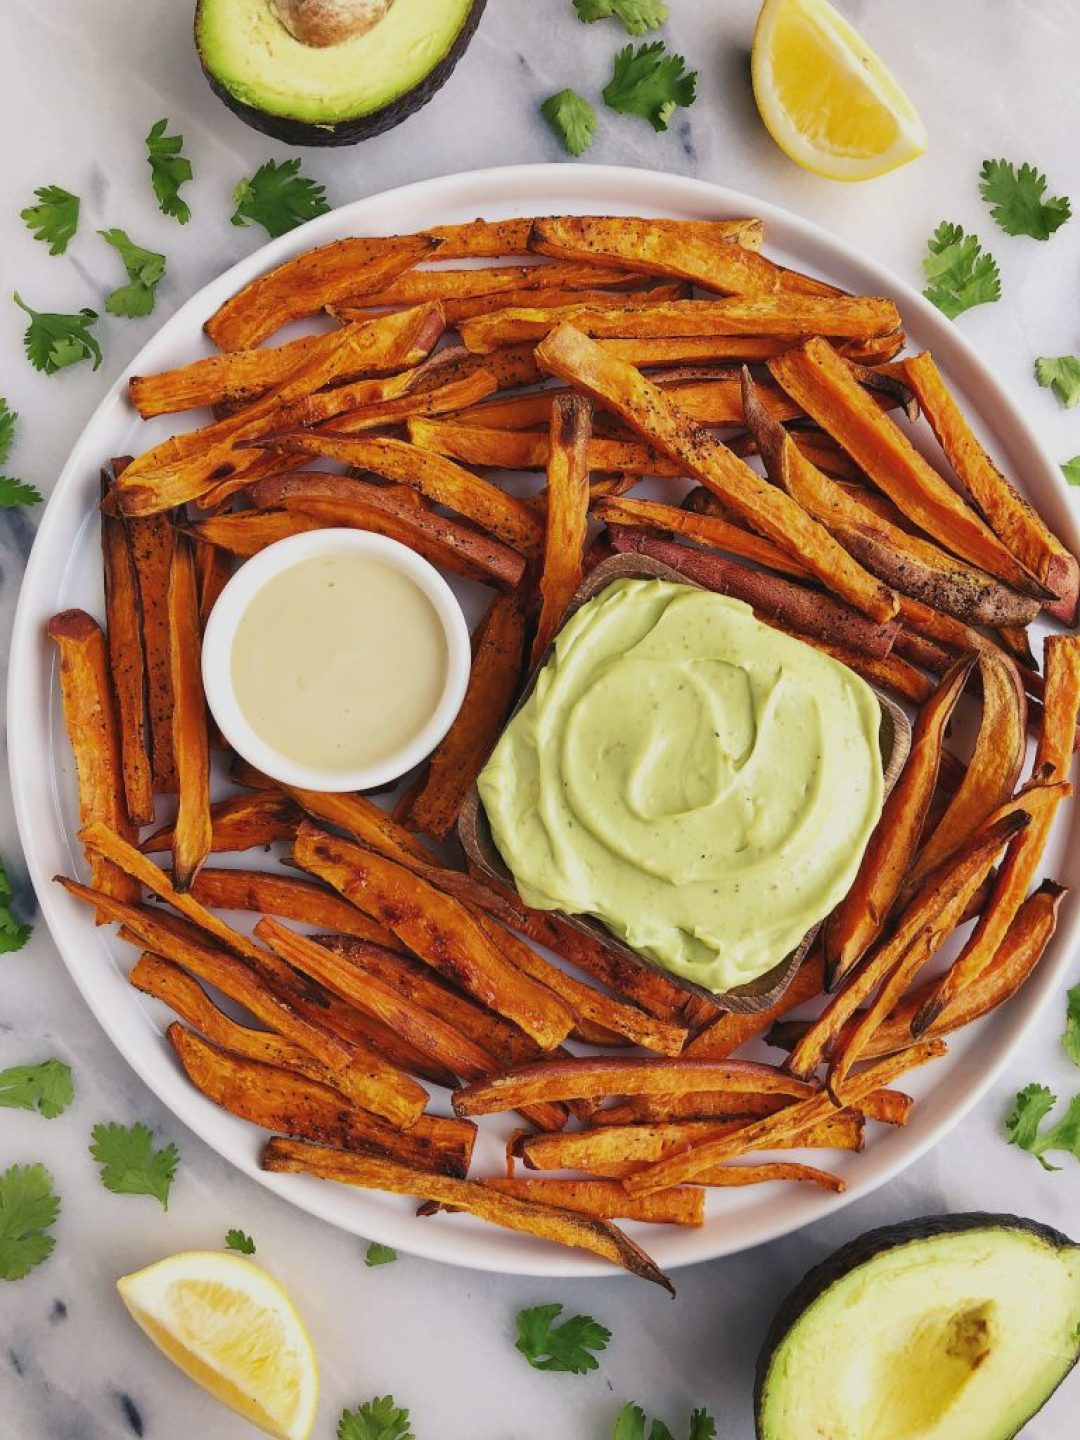 Baked Shoestring Sweet Potato Fries with Avocado Aioli for an easy and delicious gluten-free and vegan recipe!